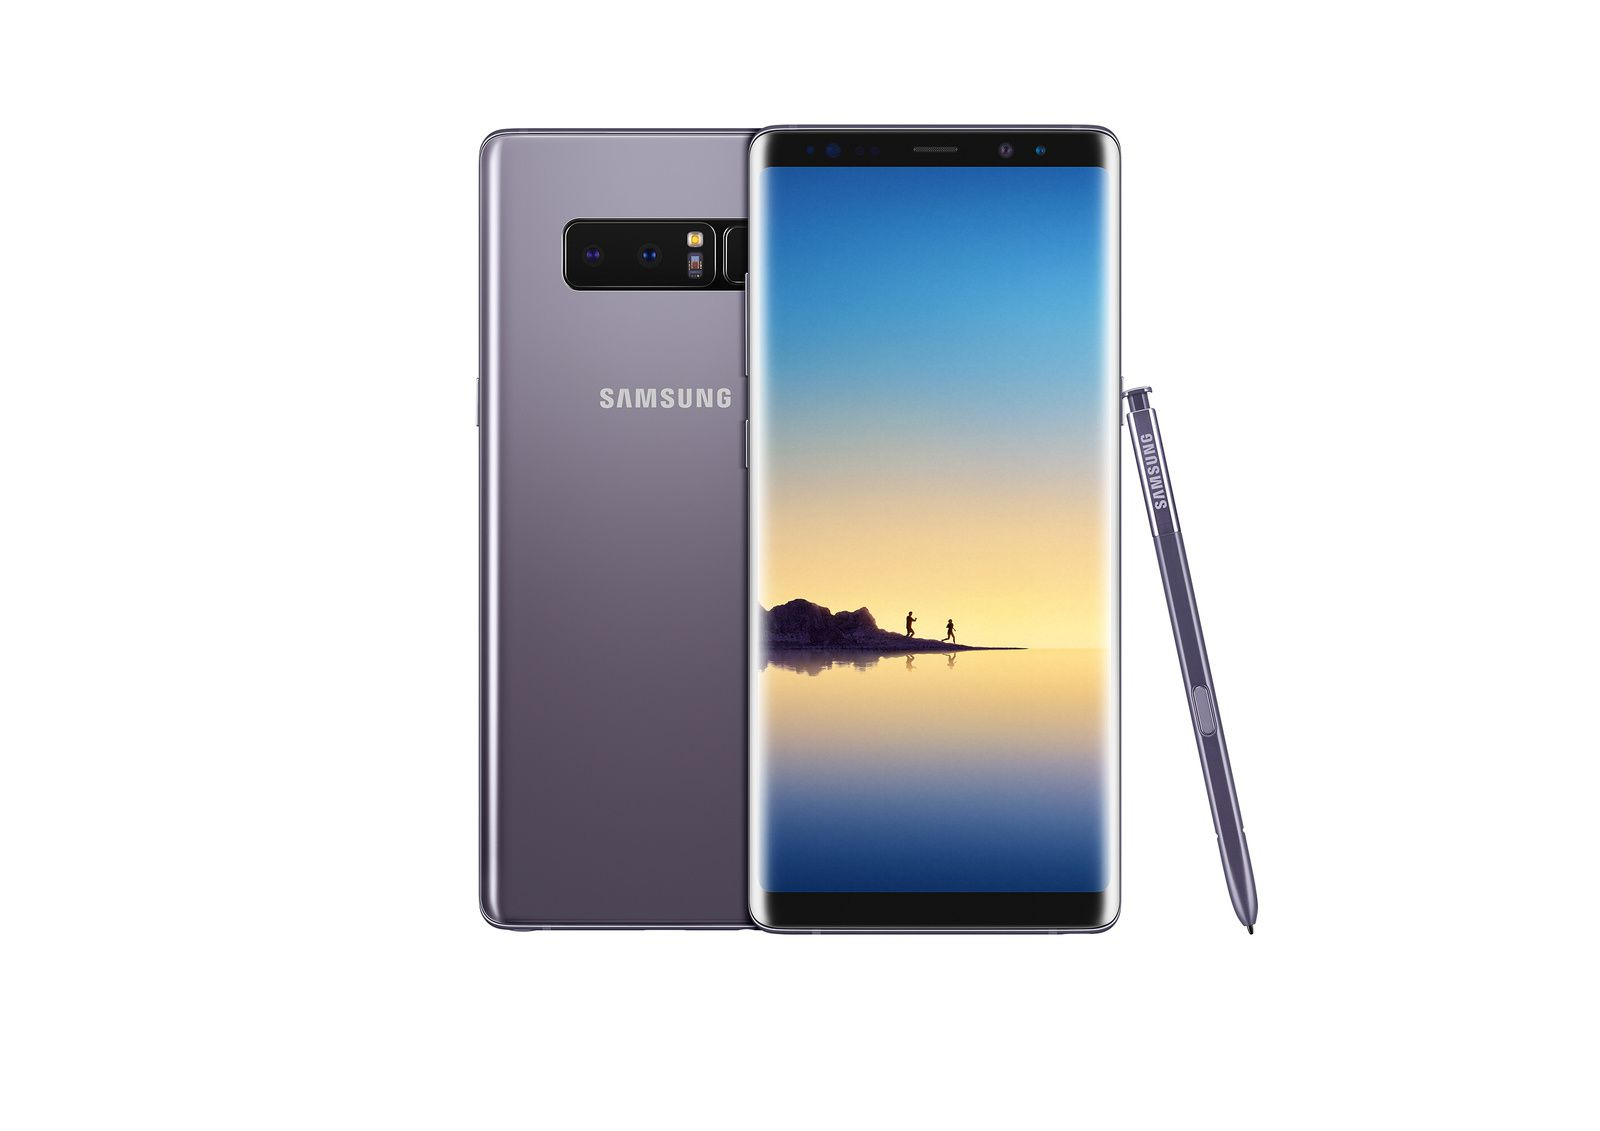 Samsung unveils new Galaxy Note 8 phablet